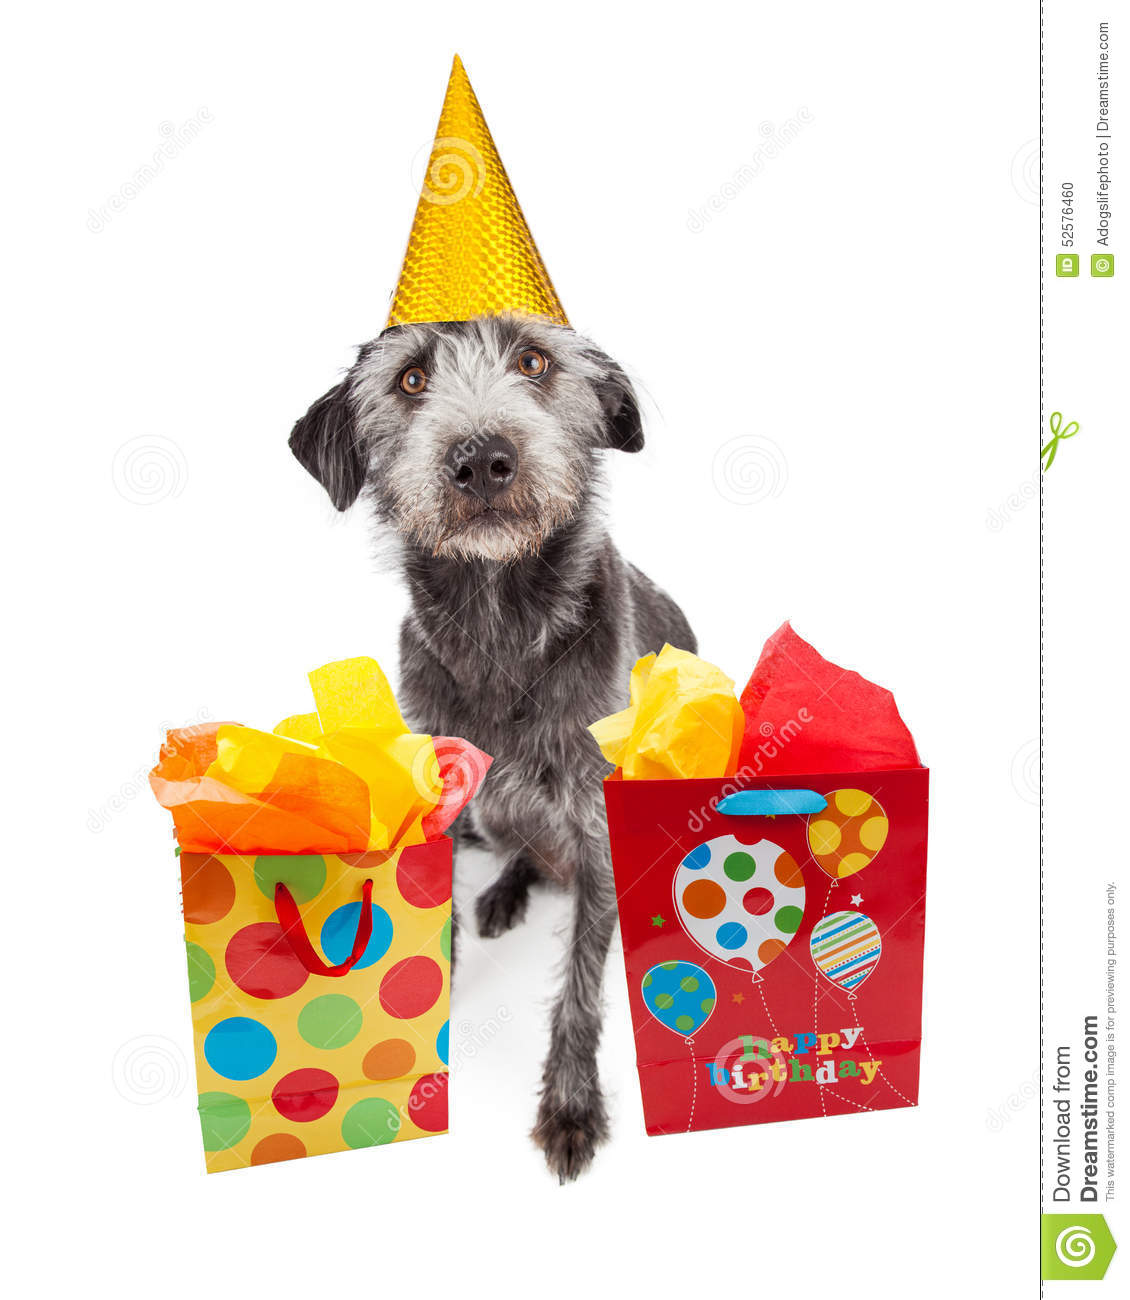 Cute Terrier Crossbreed Dog Sitting And Wearing A Yellow Birthday Party Hat With Colorful Gift Bags